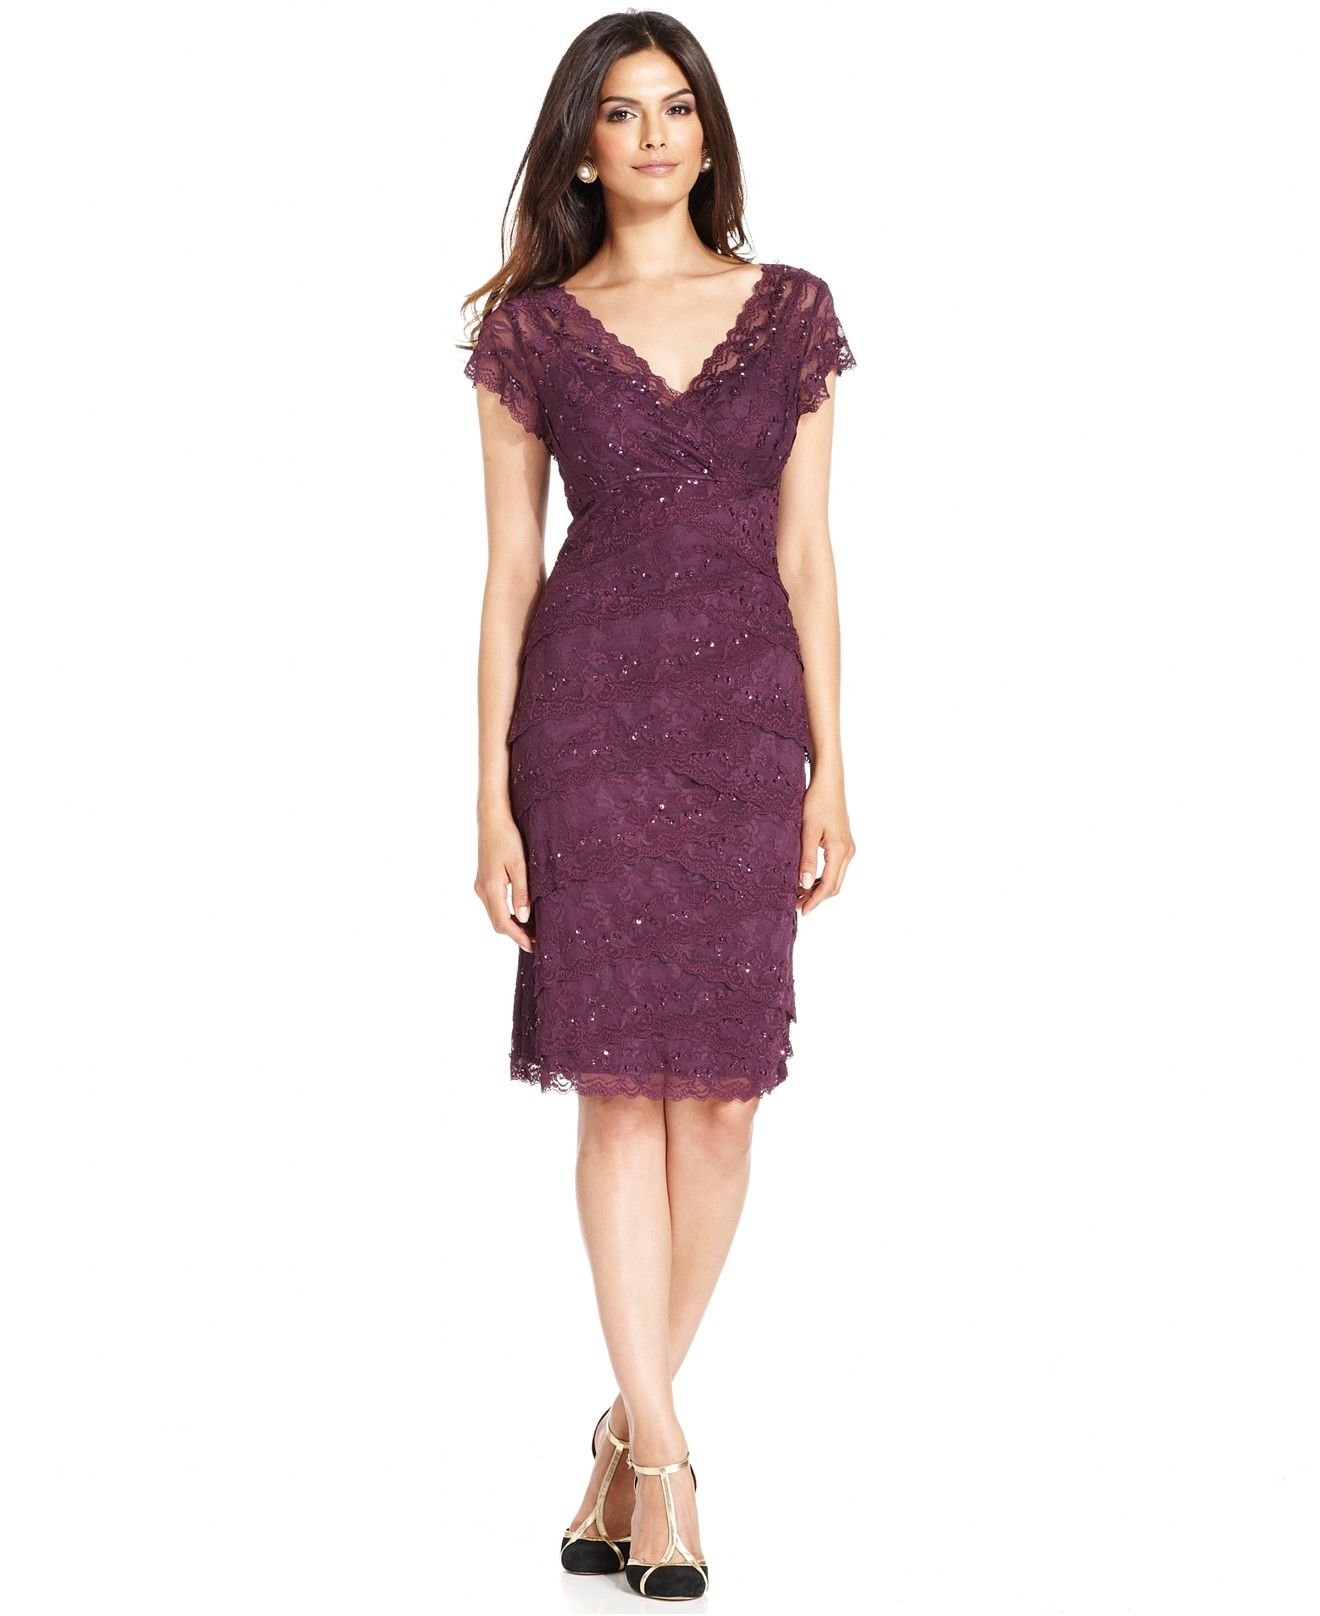 Lace dress purple  Marina CapSleeve Lace Dress  Dresses  Women  Macyus  Wedding